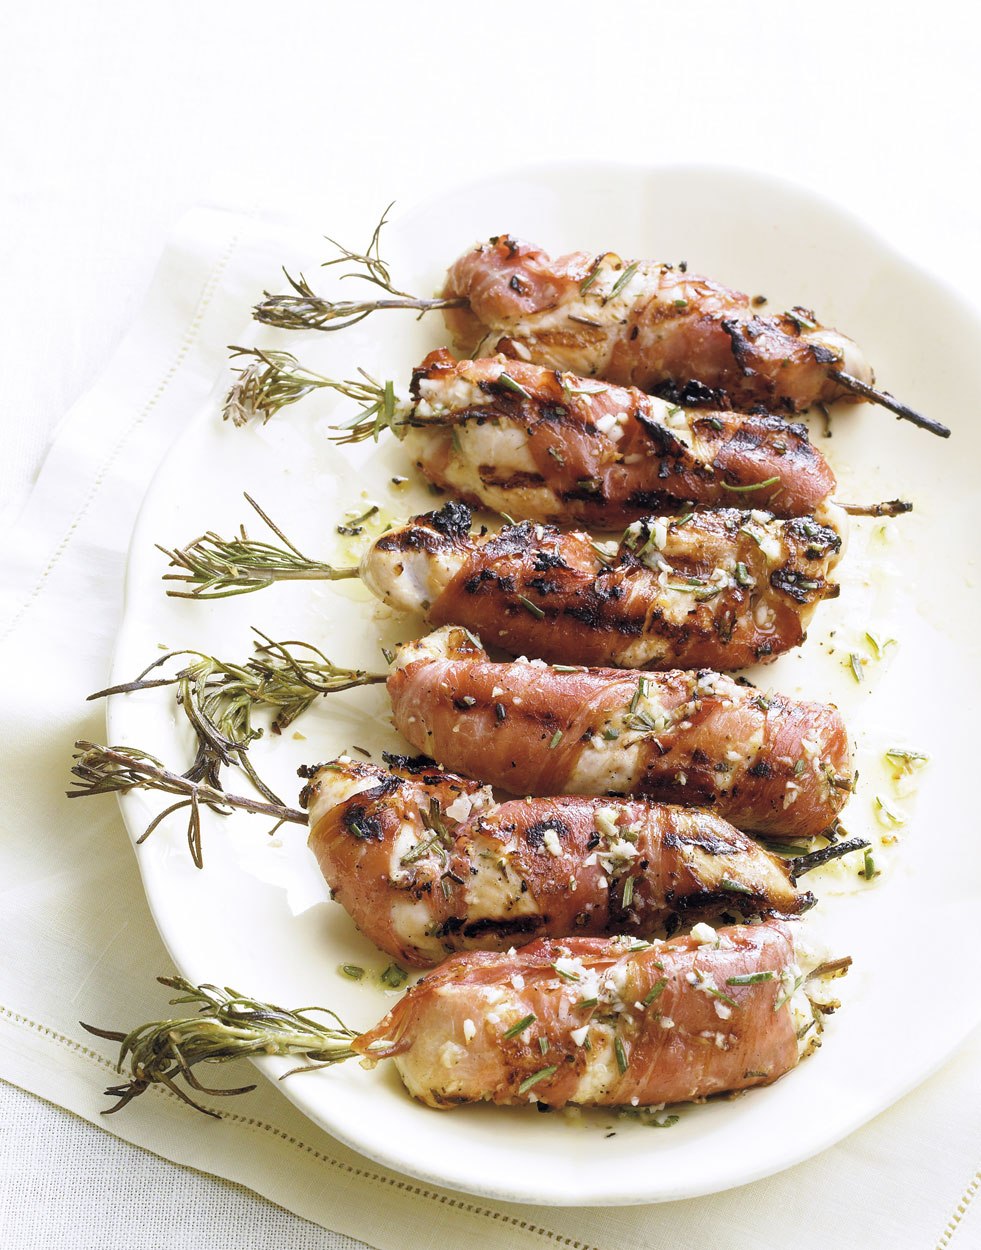 Prosciutto-Wrapped Chicken Tenders with Lemon & Rosemary